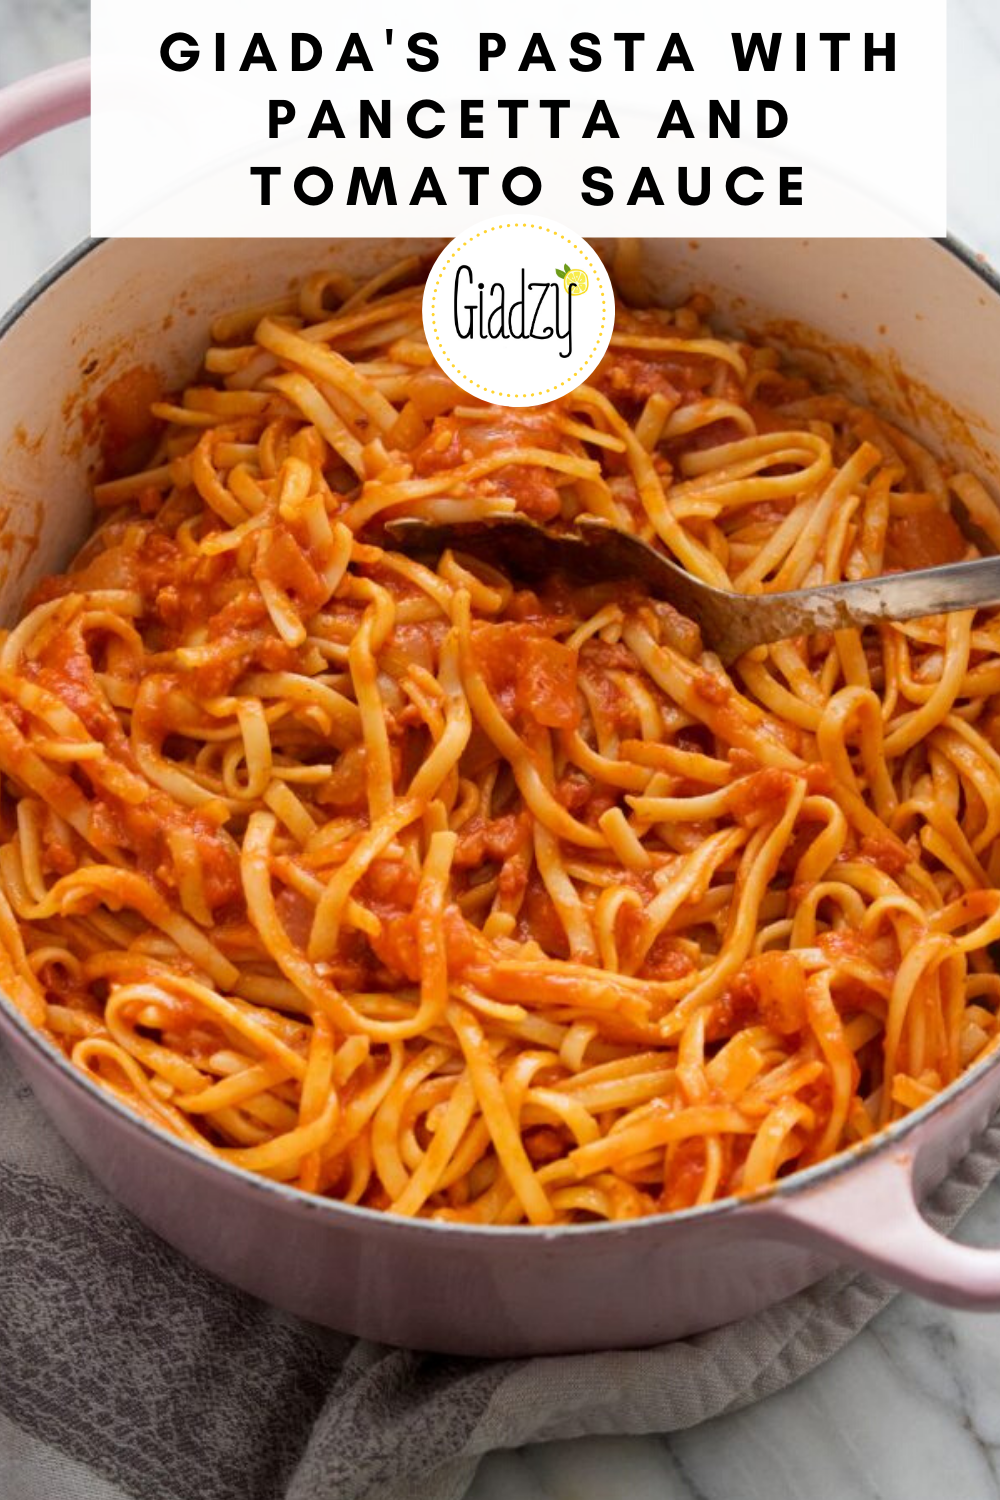 Pasta With Pancetta And Tomato Sauce Pasta All Amatriciana Giadzy Recipe Pancetta Recipes Pasta Pancetta Pasta Pasta Dishes